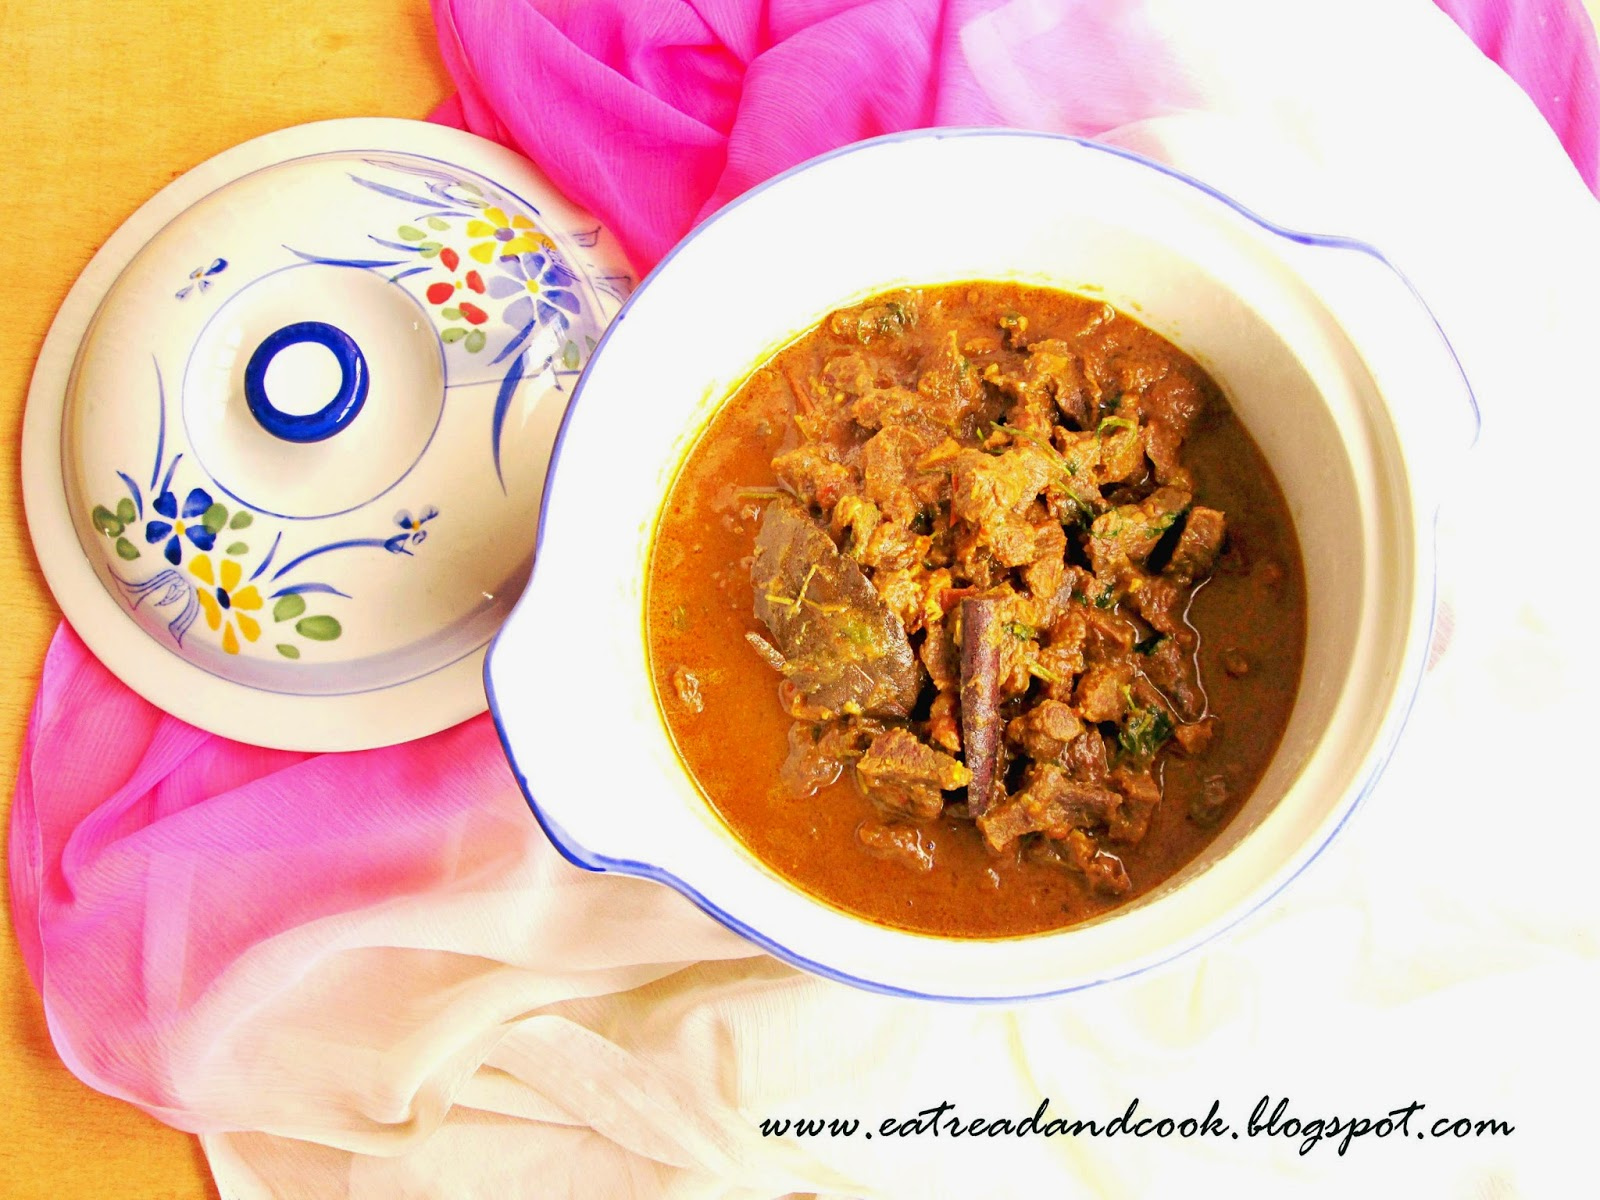 Kochi Pathar Jhol / Bengali Thin Mutton Curry, Kochi Pathar Jhol / Bengali Thin Mutton Curry recipe, how to cook Kochi Pathar Jhol / Bengali Thin Mutton Curry, how to make Kochi Pathar Jhol / Bengali Thin Mutton Curry, bengali Kochi Pathar Jhol / Bengali Thin Mutton Curry, how to cook Kochi Pathar Jhol / Bengali Thin Mutton Curry, how to make Kochi Pathar Jhol / Bengali Thin Mutton Curry